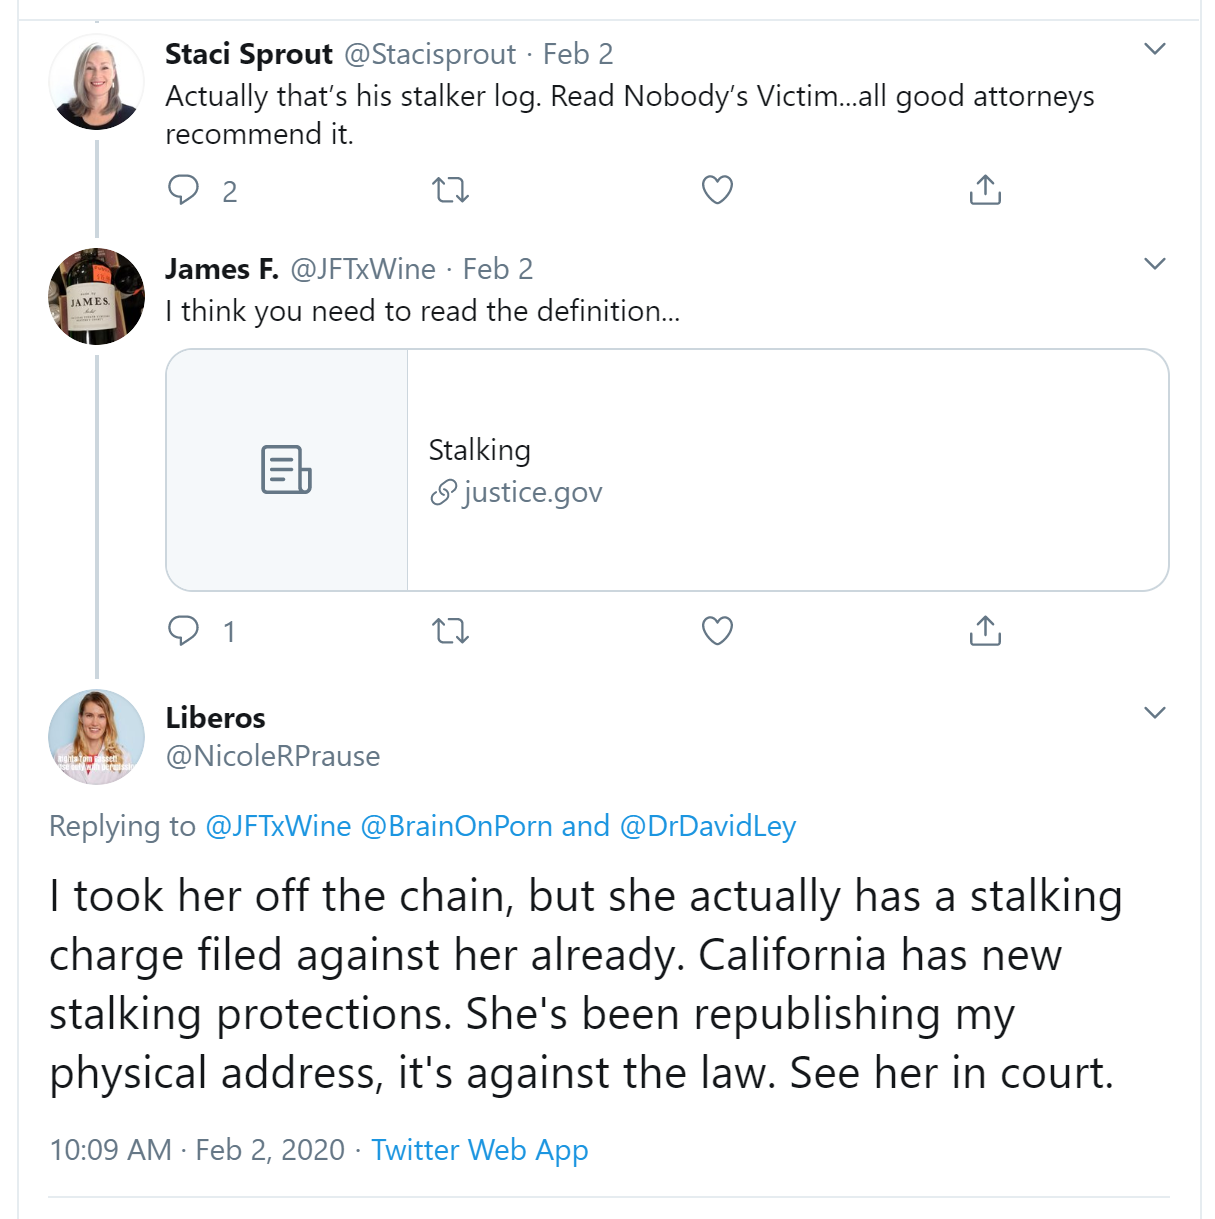 Lie. I don't have her physical address and have never posted it anywhere. More empty legal posturing…and baseless accusations of me: defamation per se.